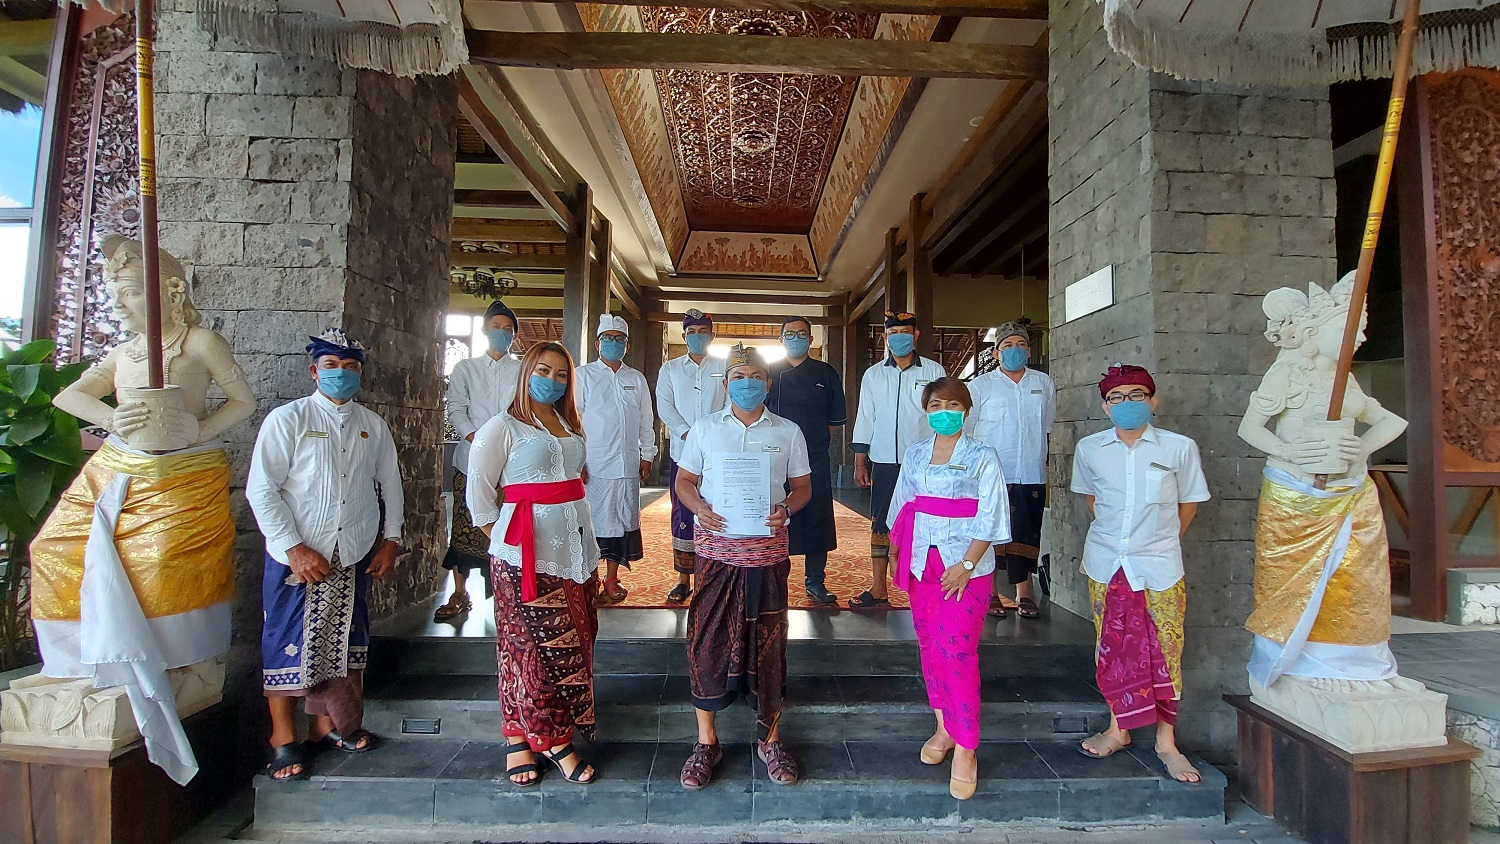 https://highend-traveller.com/sthala-a-tribute-portfolio-hotel-ubud-bali-receives-cleanliness-health-safety-and-environmental-sustainability-chse-certification-from-dinas-pariwisata-pemerintah-propinsi-bali-bali-government/